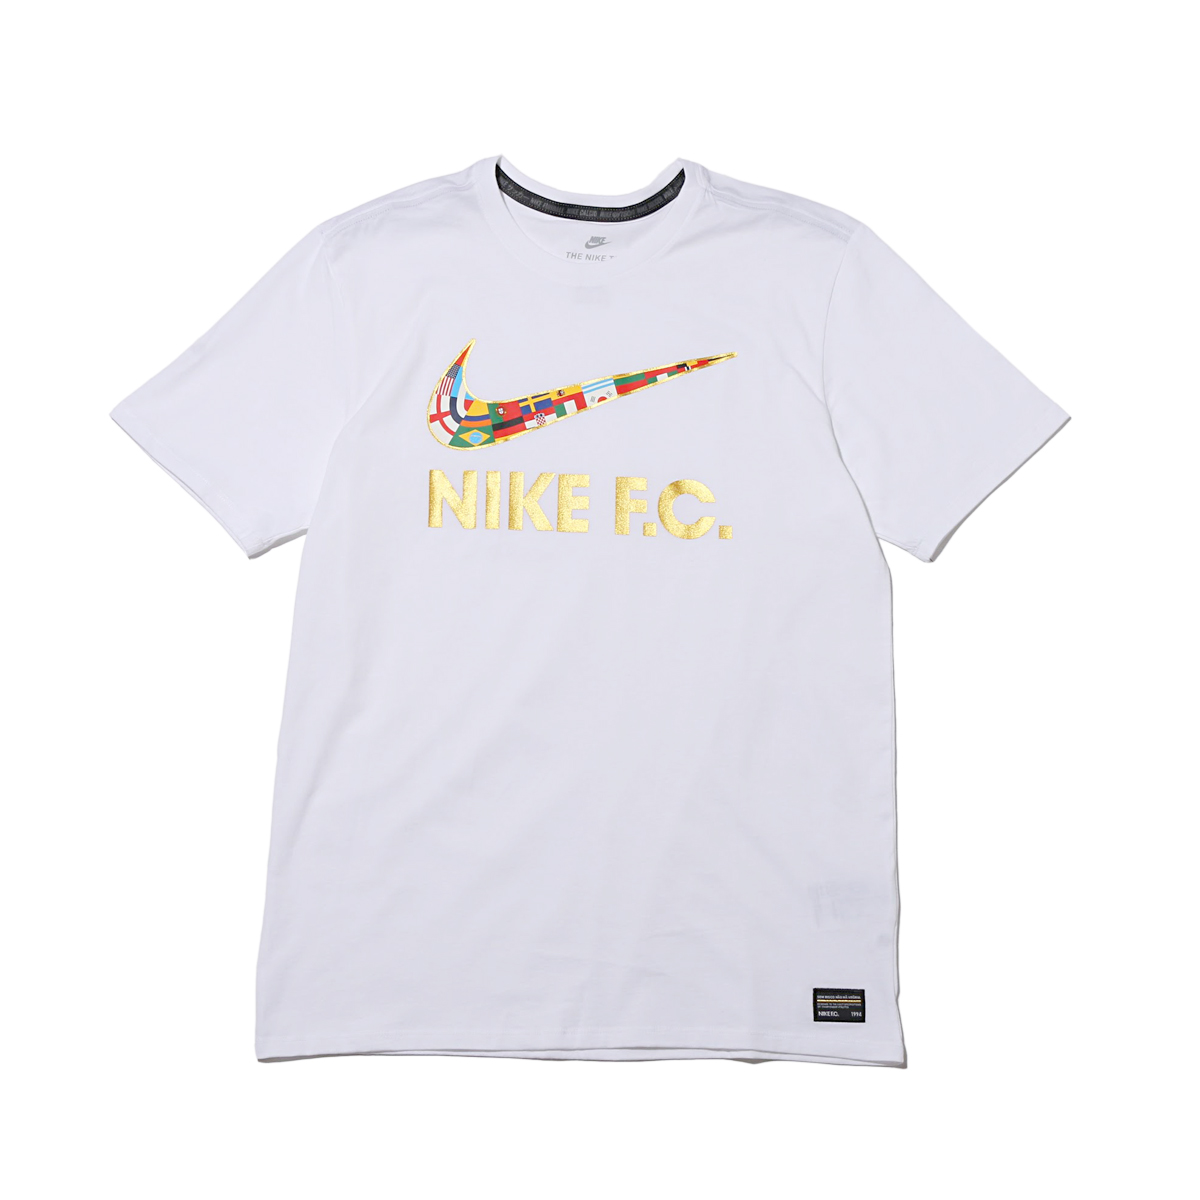 acab84568fd0 Nike Fc T Shirt White – EDGE Engineering and Consulting Limited